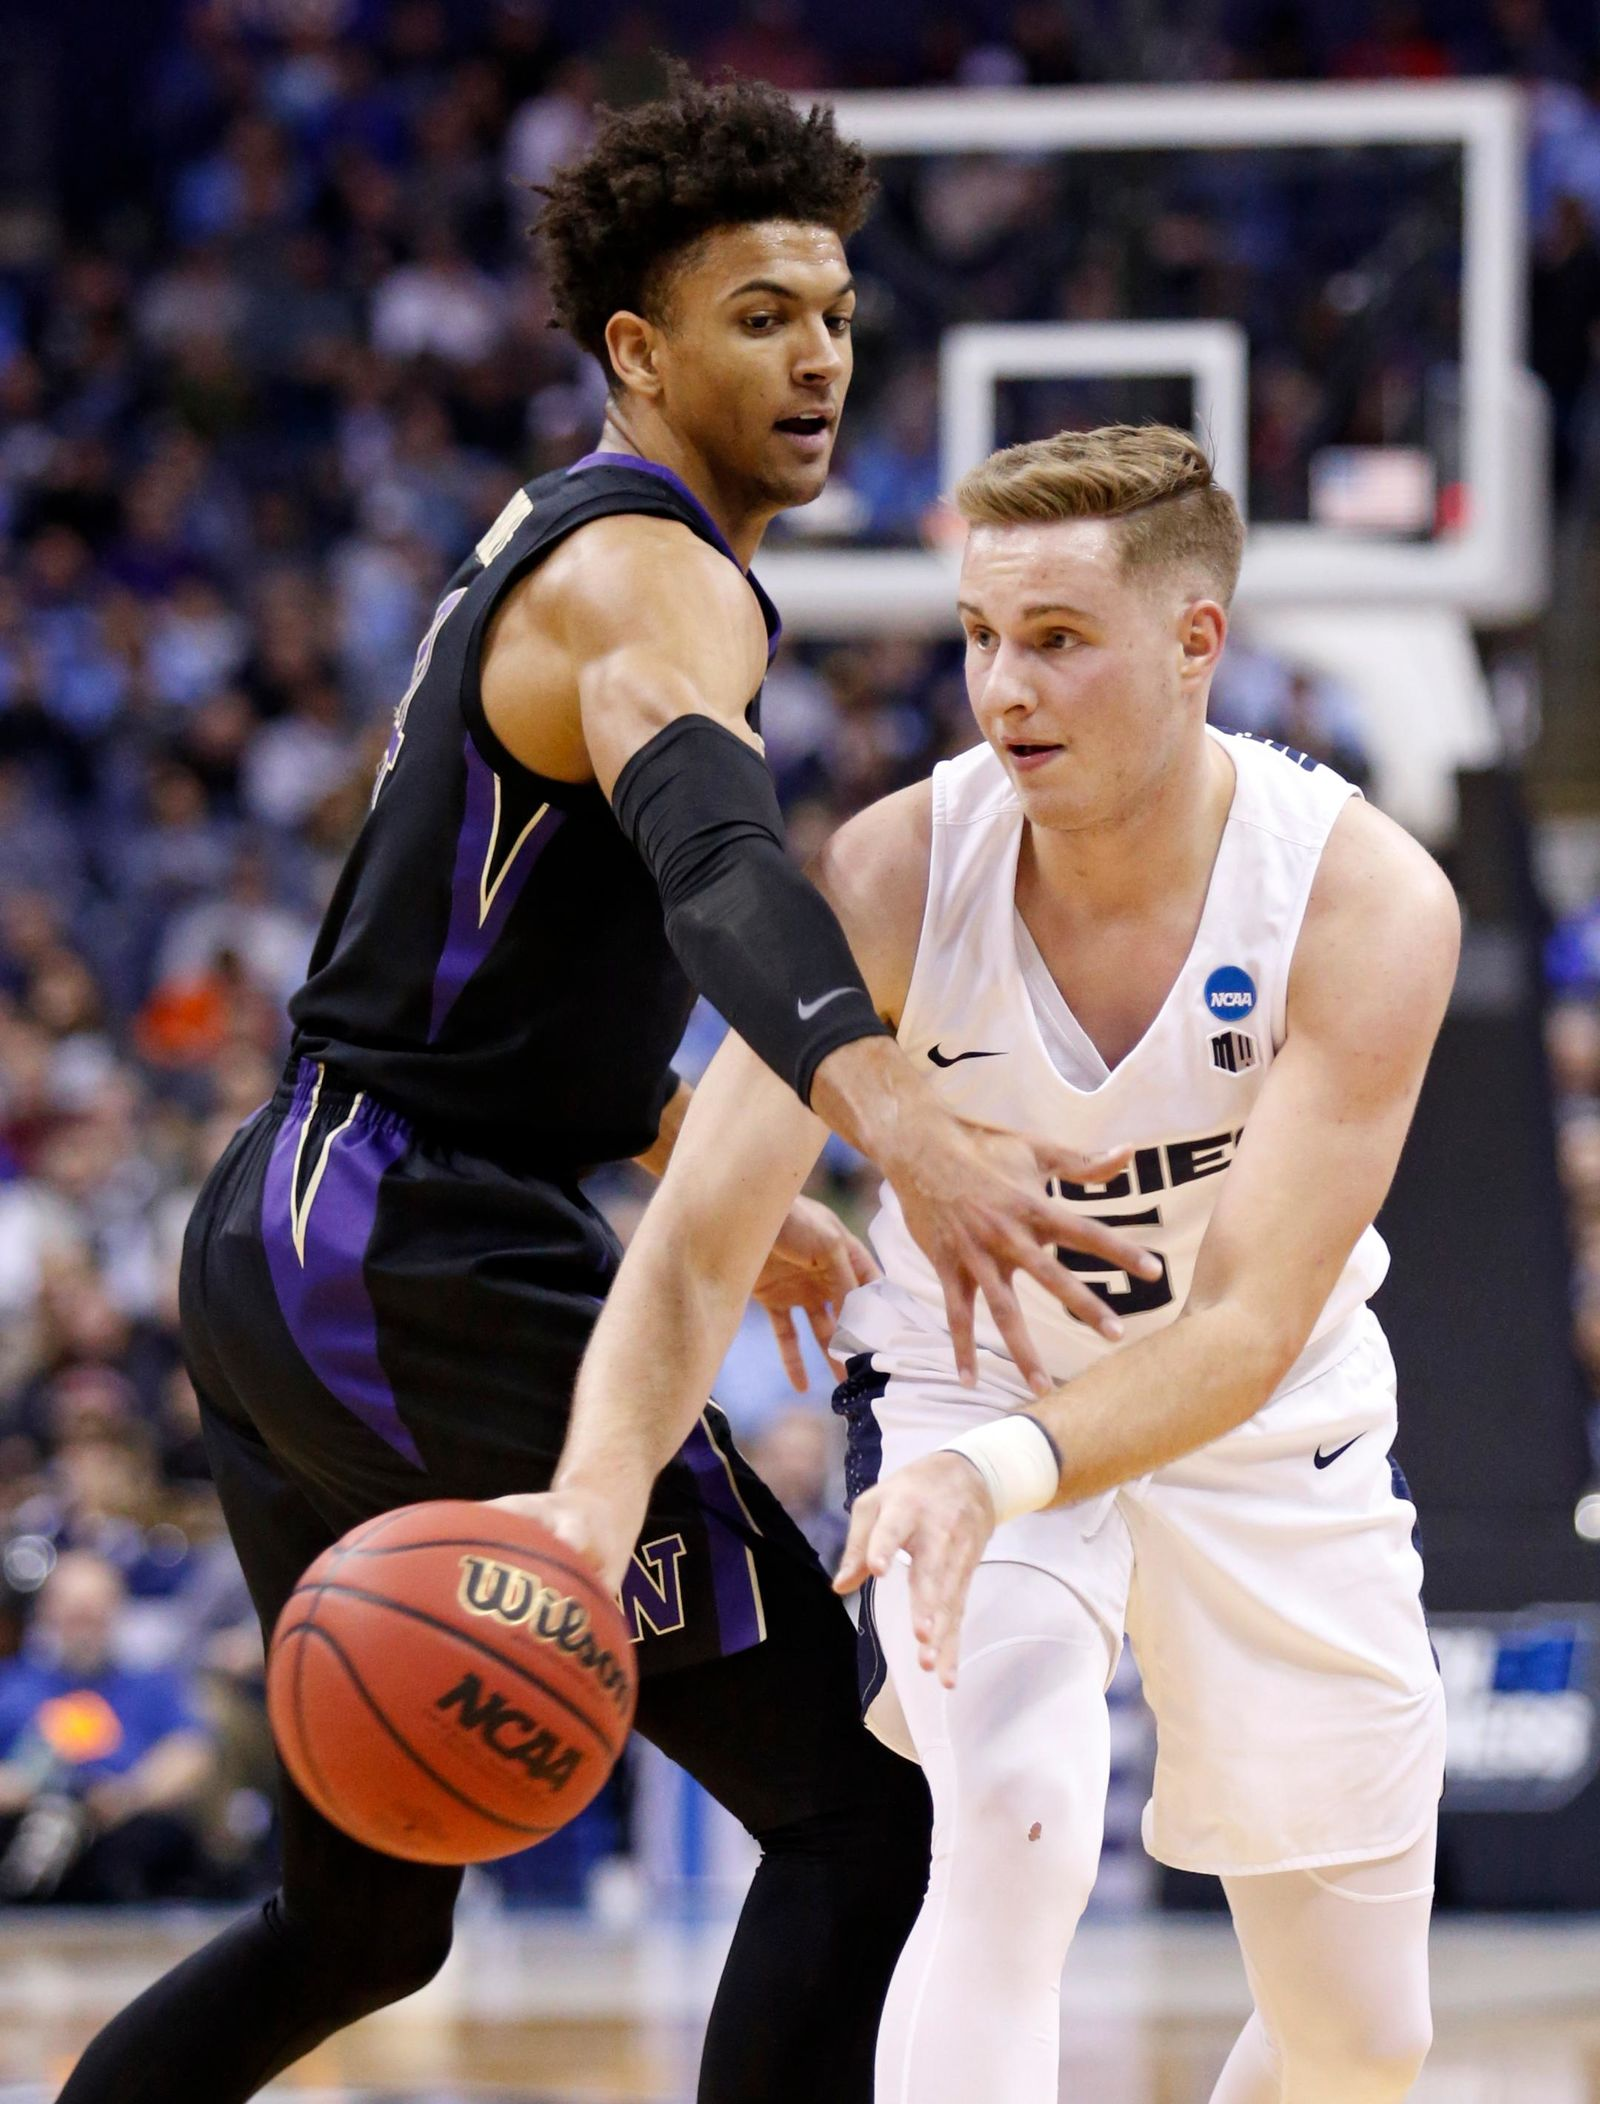 Utah State's Sam Merrill, right, passes against Washington's Matisse Thybulle in the first half of a first-round game in the NCAA men's college basketball tournament in Columbus, Ohio, Friday, March 22, 2019. (AP Photo/Paul Vernon)